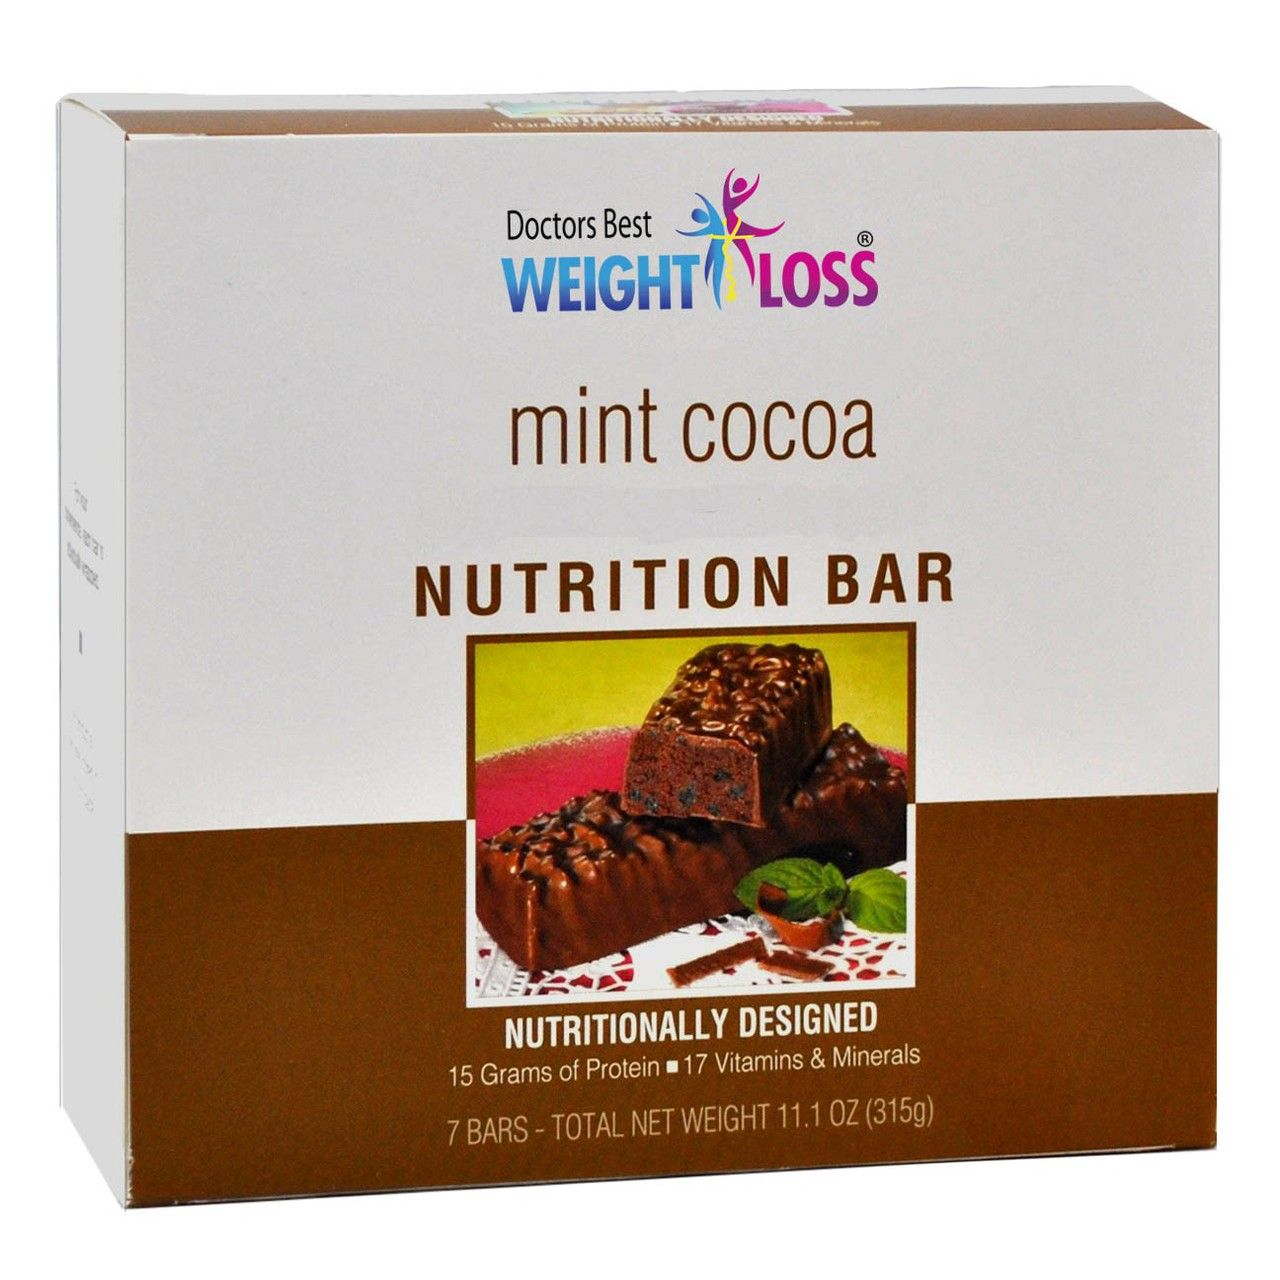 (7 bars per box) A chewy, slightly crispy, chocolately treat with a hint of mint flavor. This bar can easily get you over your chocolate cravings, giving you taste and nutrition on a level that will exceed your expectations. Our Mint Cocoaaspartame-free protein diet bars boast 15 grams of protein,...